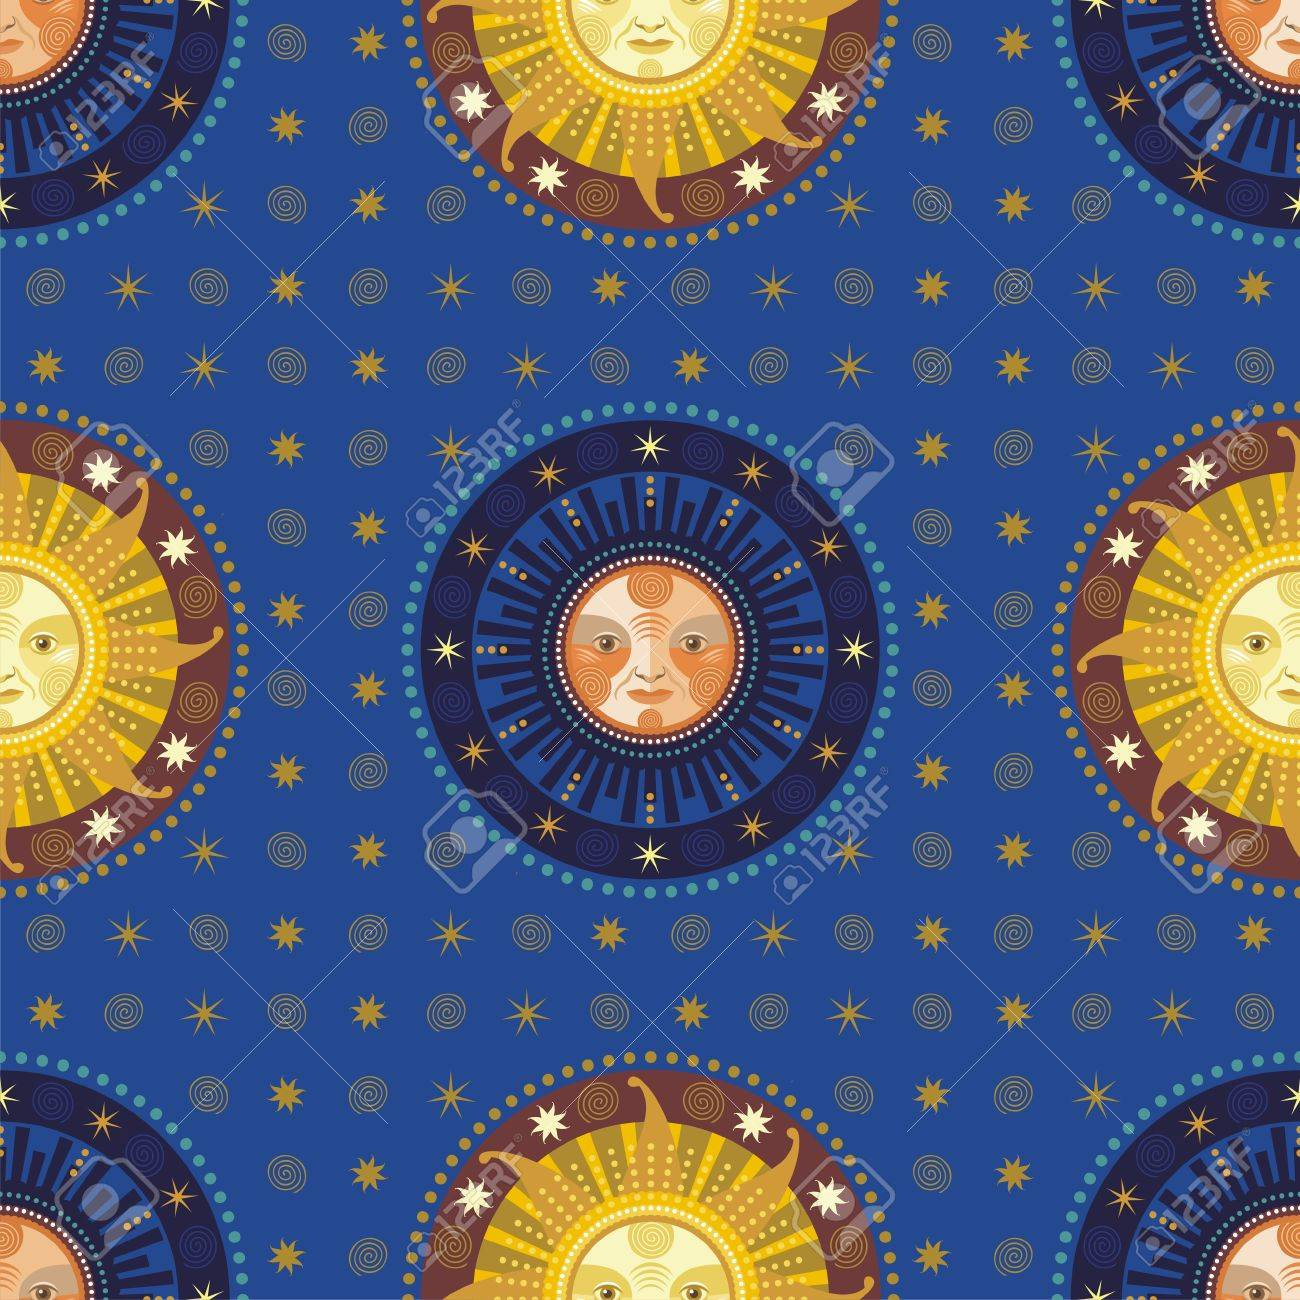 Vintage seamless pattern with decorative celestial elements Stock Vector - 12995272